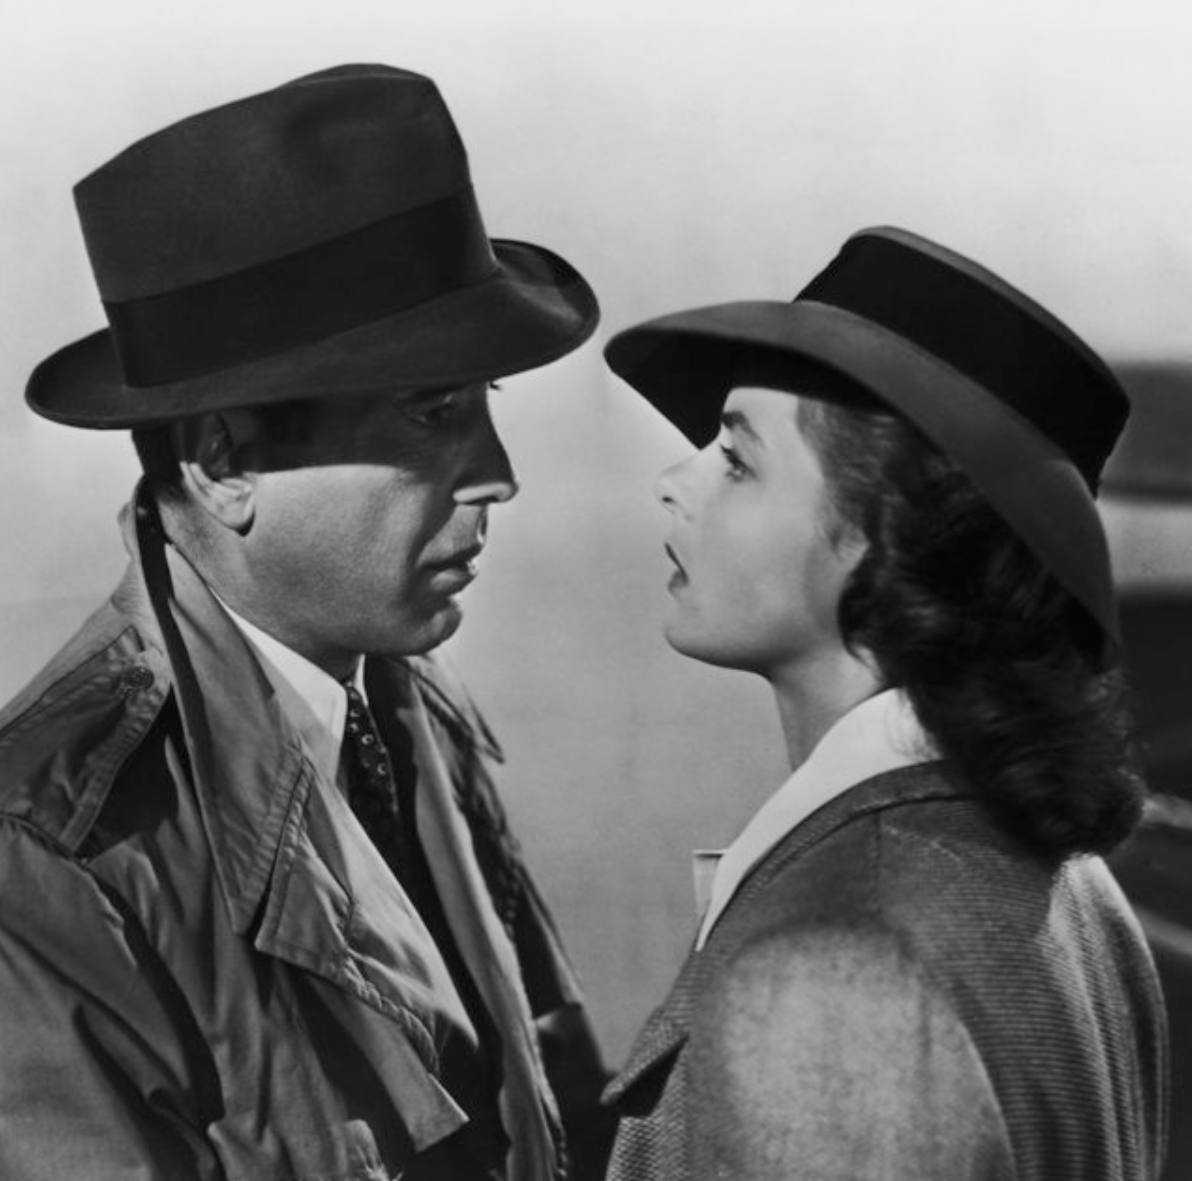 Humphrey Bogart and Ingrid Bergman had Casablanca, and Rochester, in common